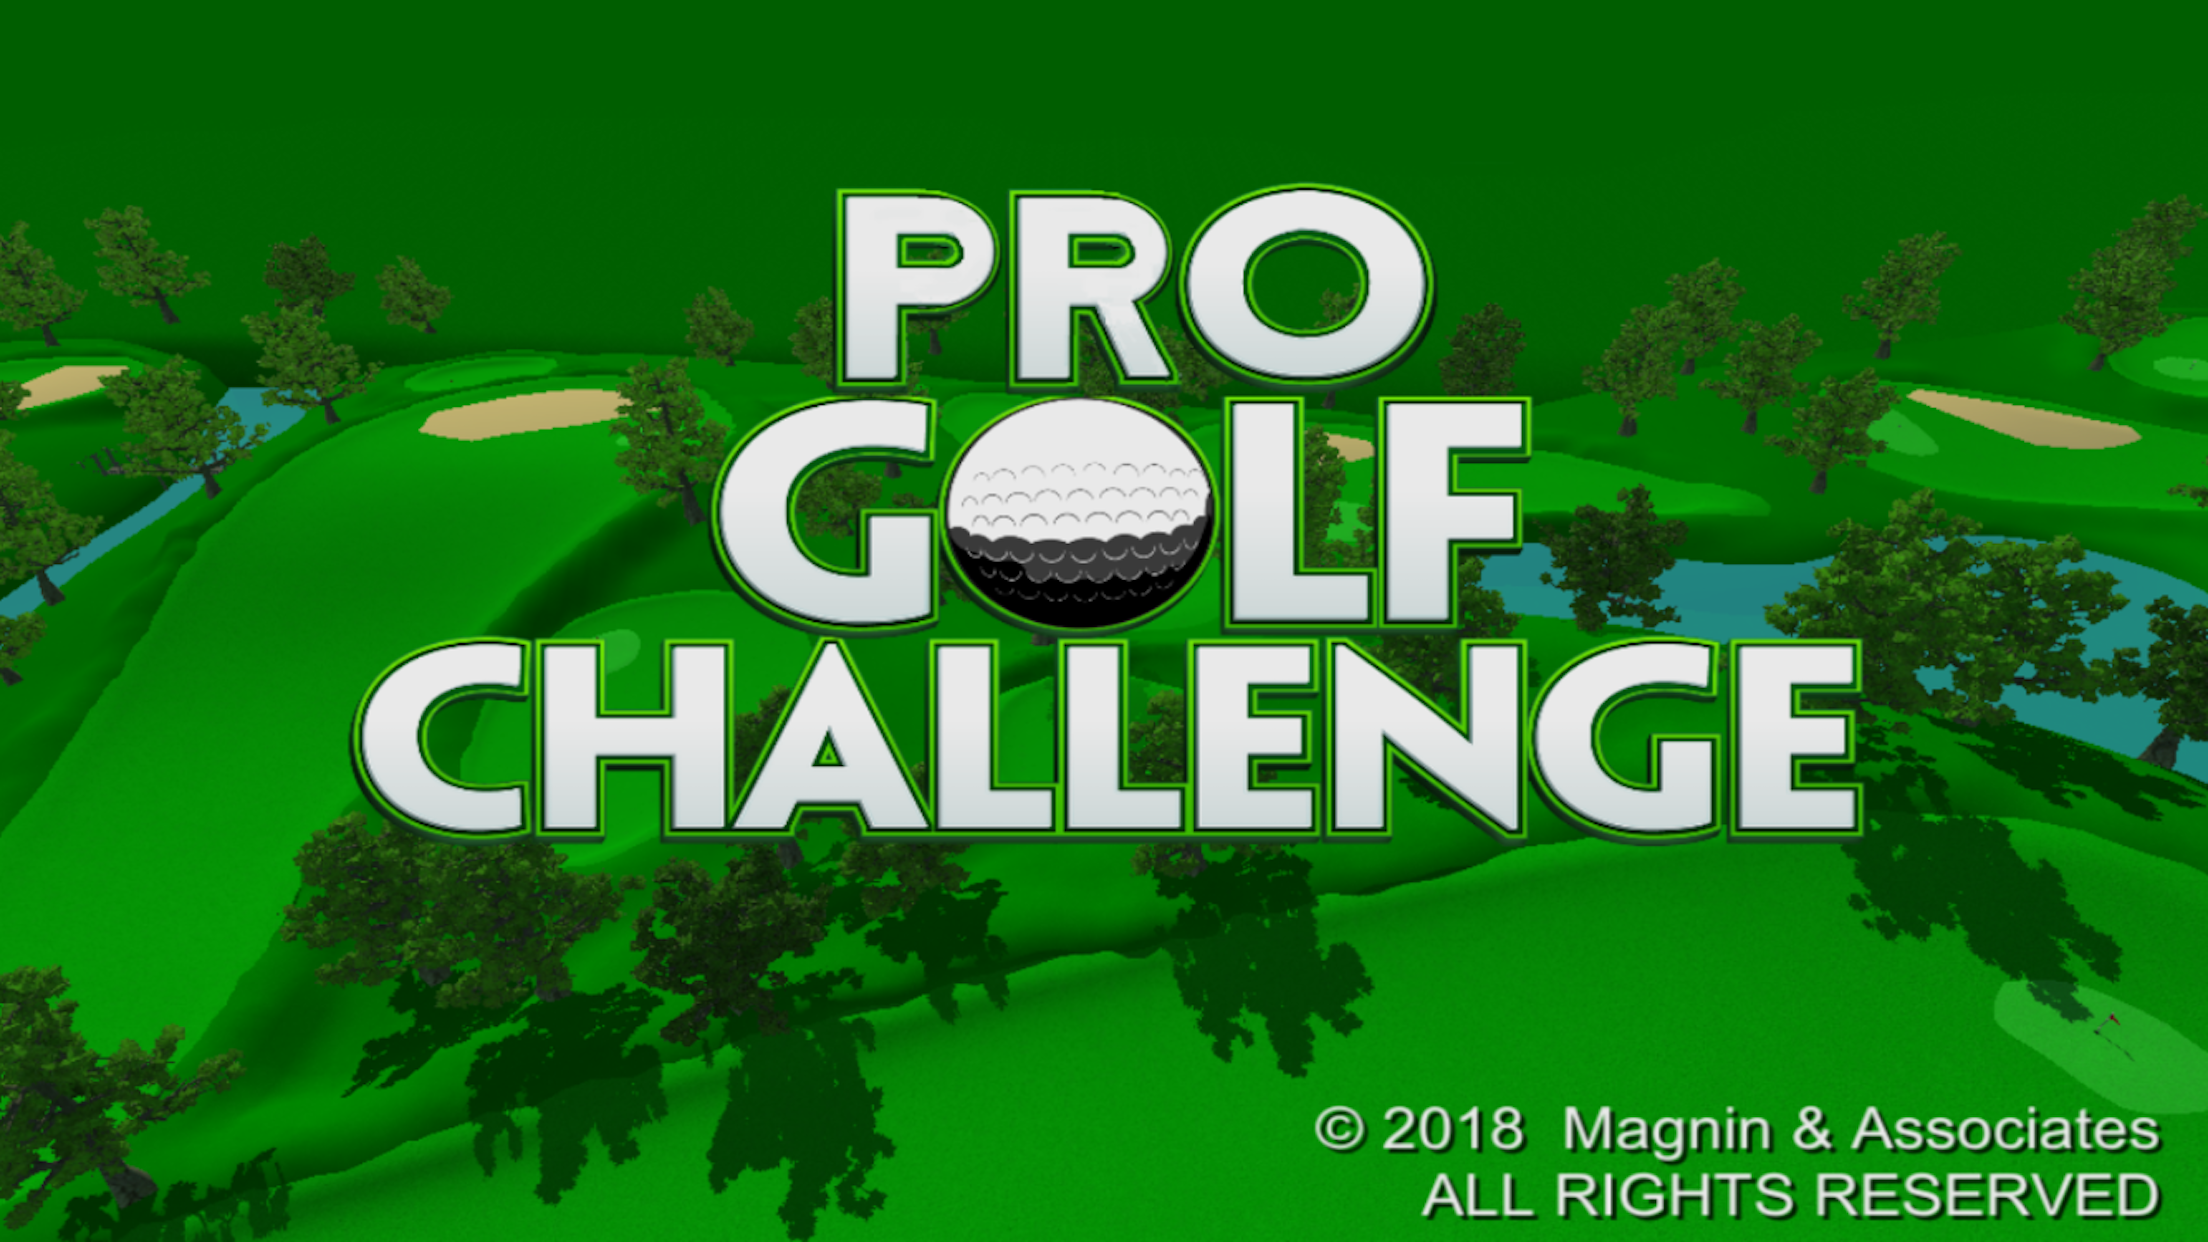 Pro Golf Challenge new game for iOS, Android, and Windows 10 Image